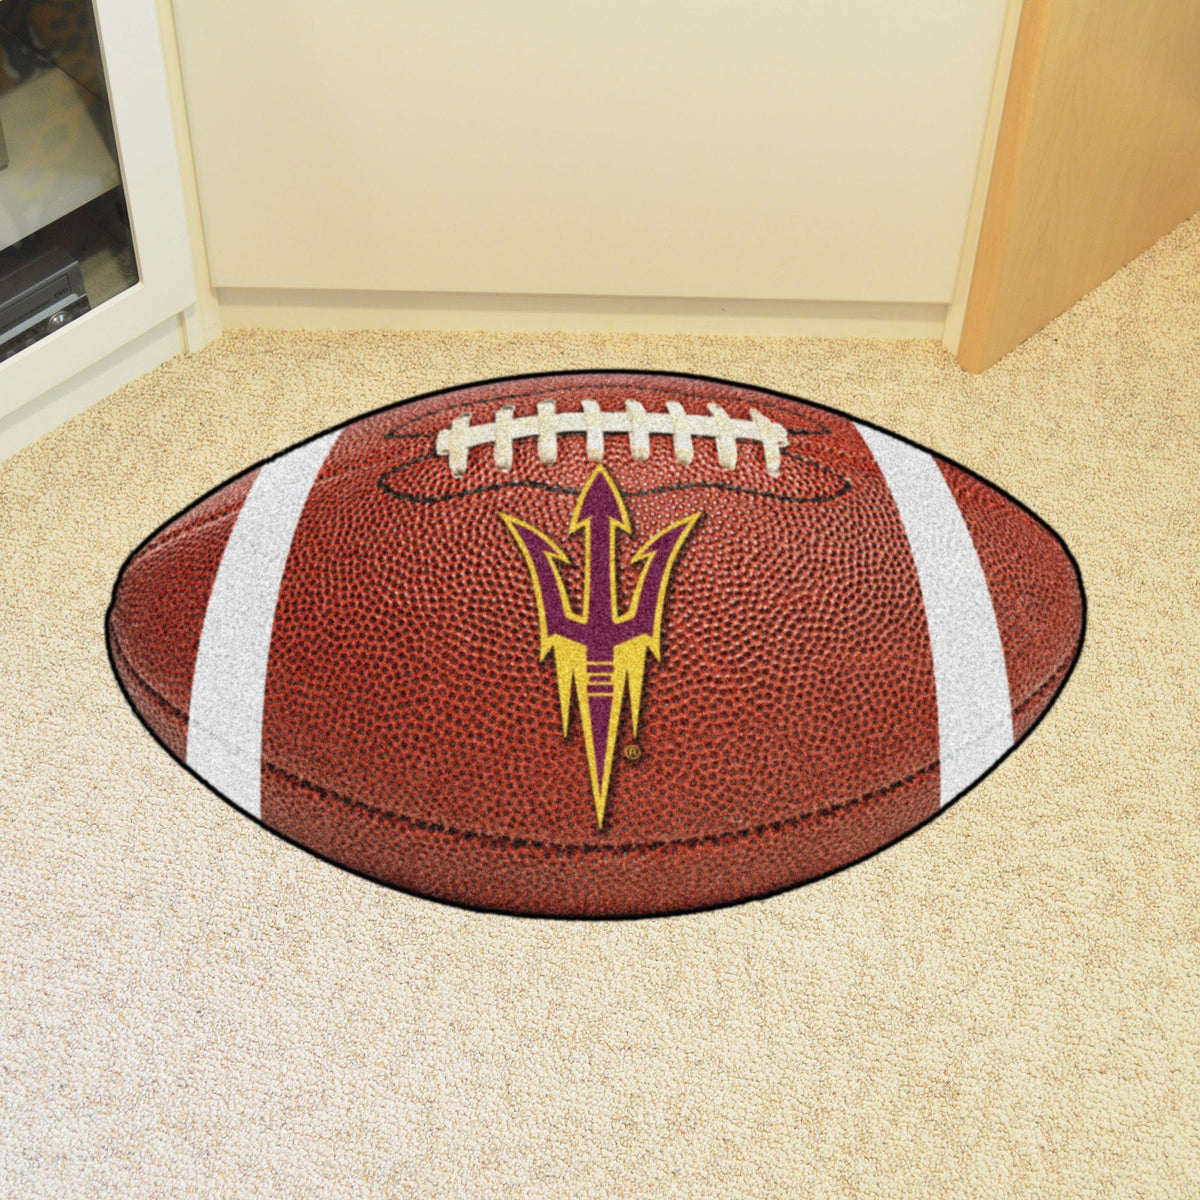 Collegiate - Football Mat: A - K Collegiate Mats, Rectangular Mats, Football Mat, Collegiate, Home Fan Mats Arizona State